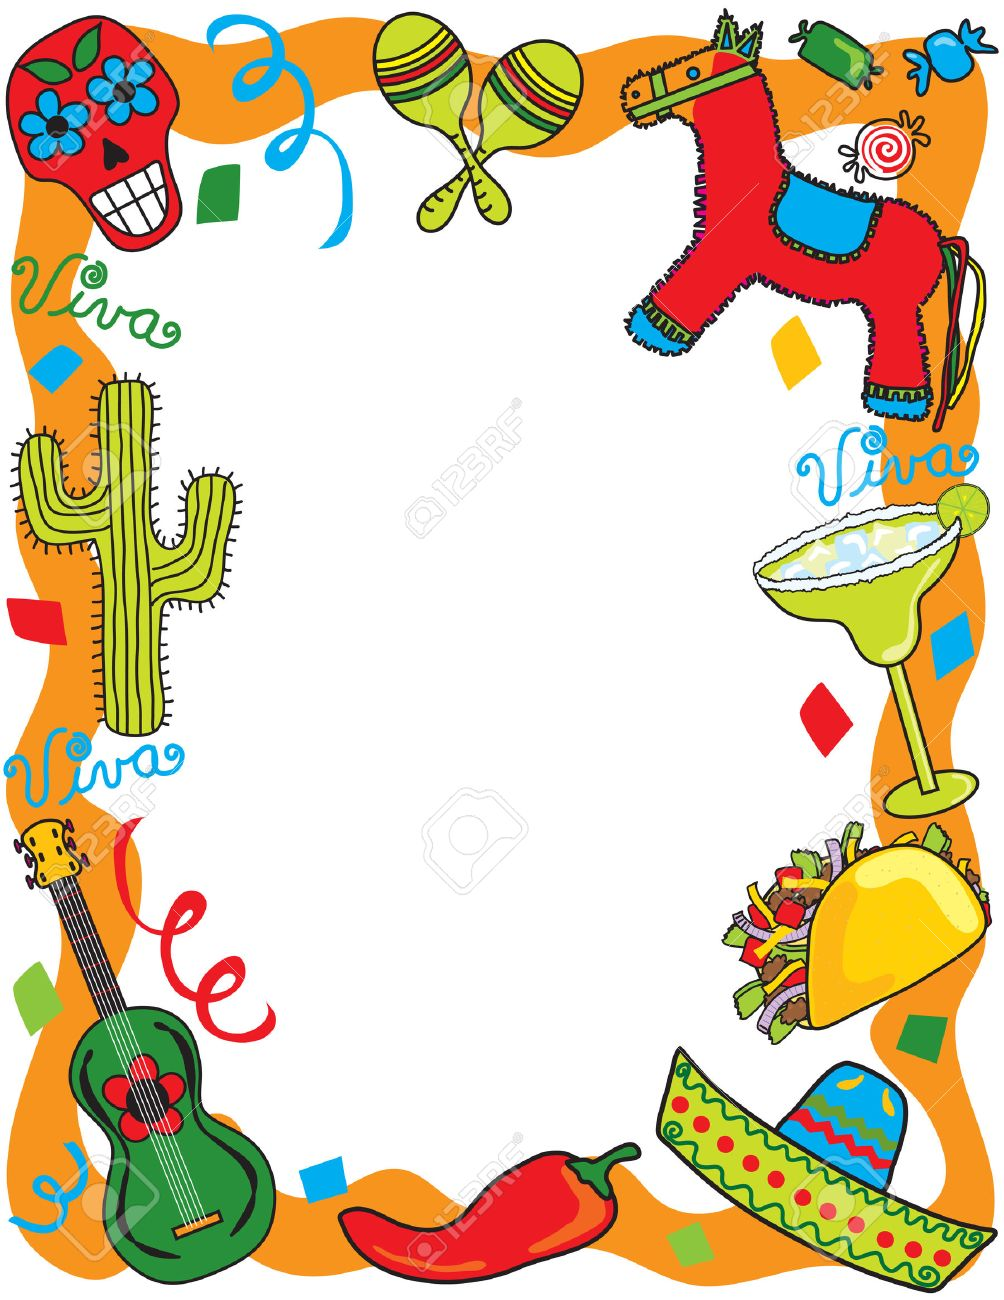 mexican fiesta party invitation royalty free cliparts vectors, invitation samples